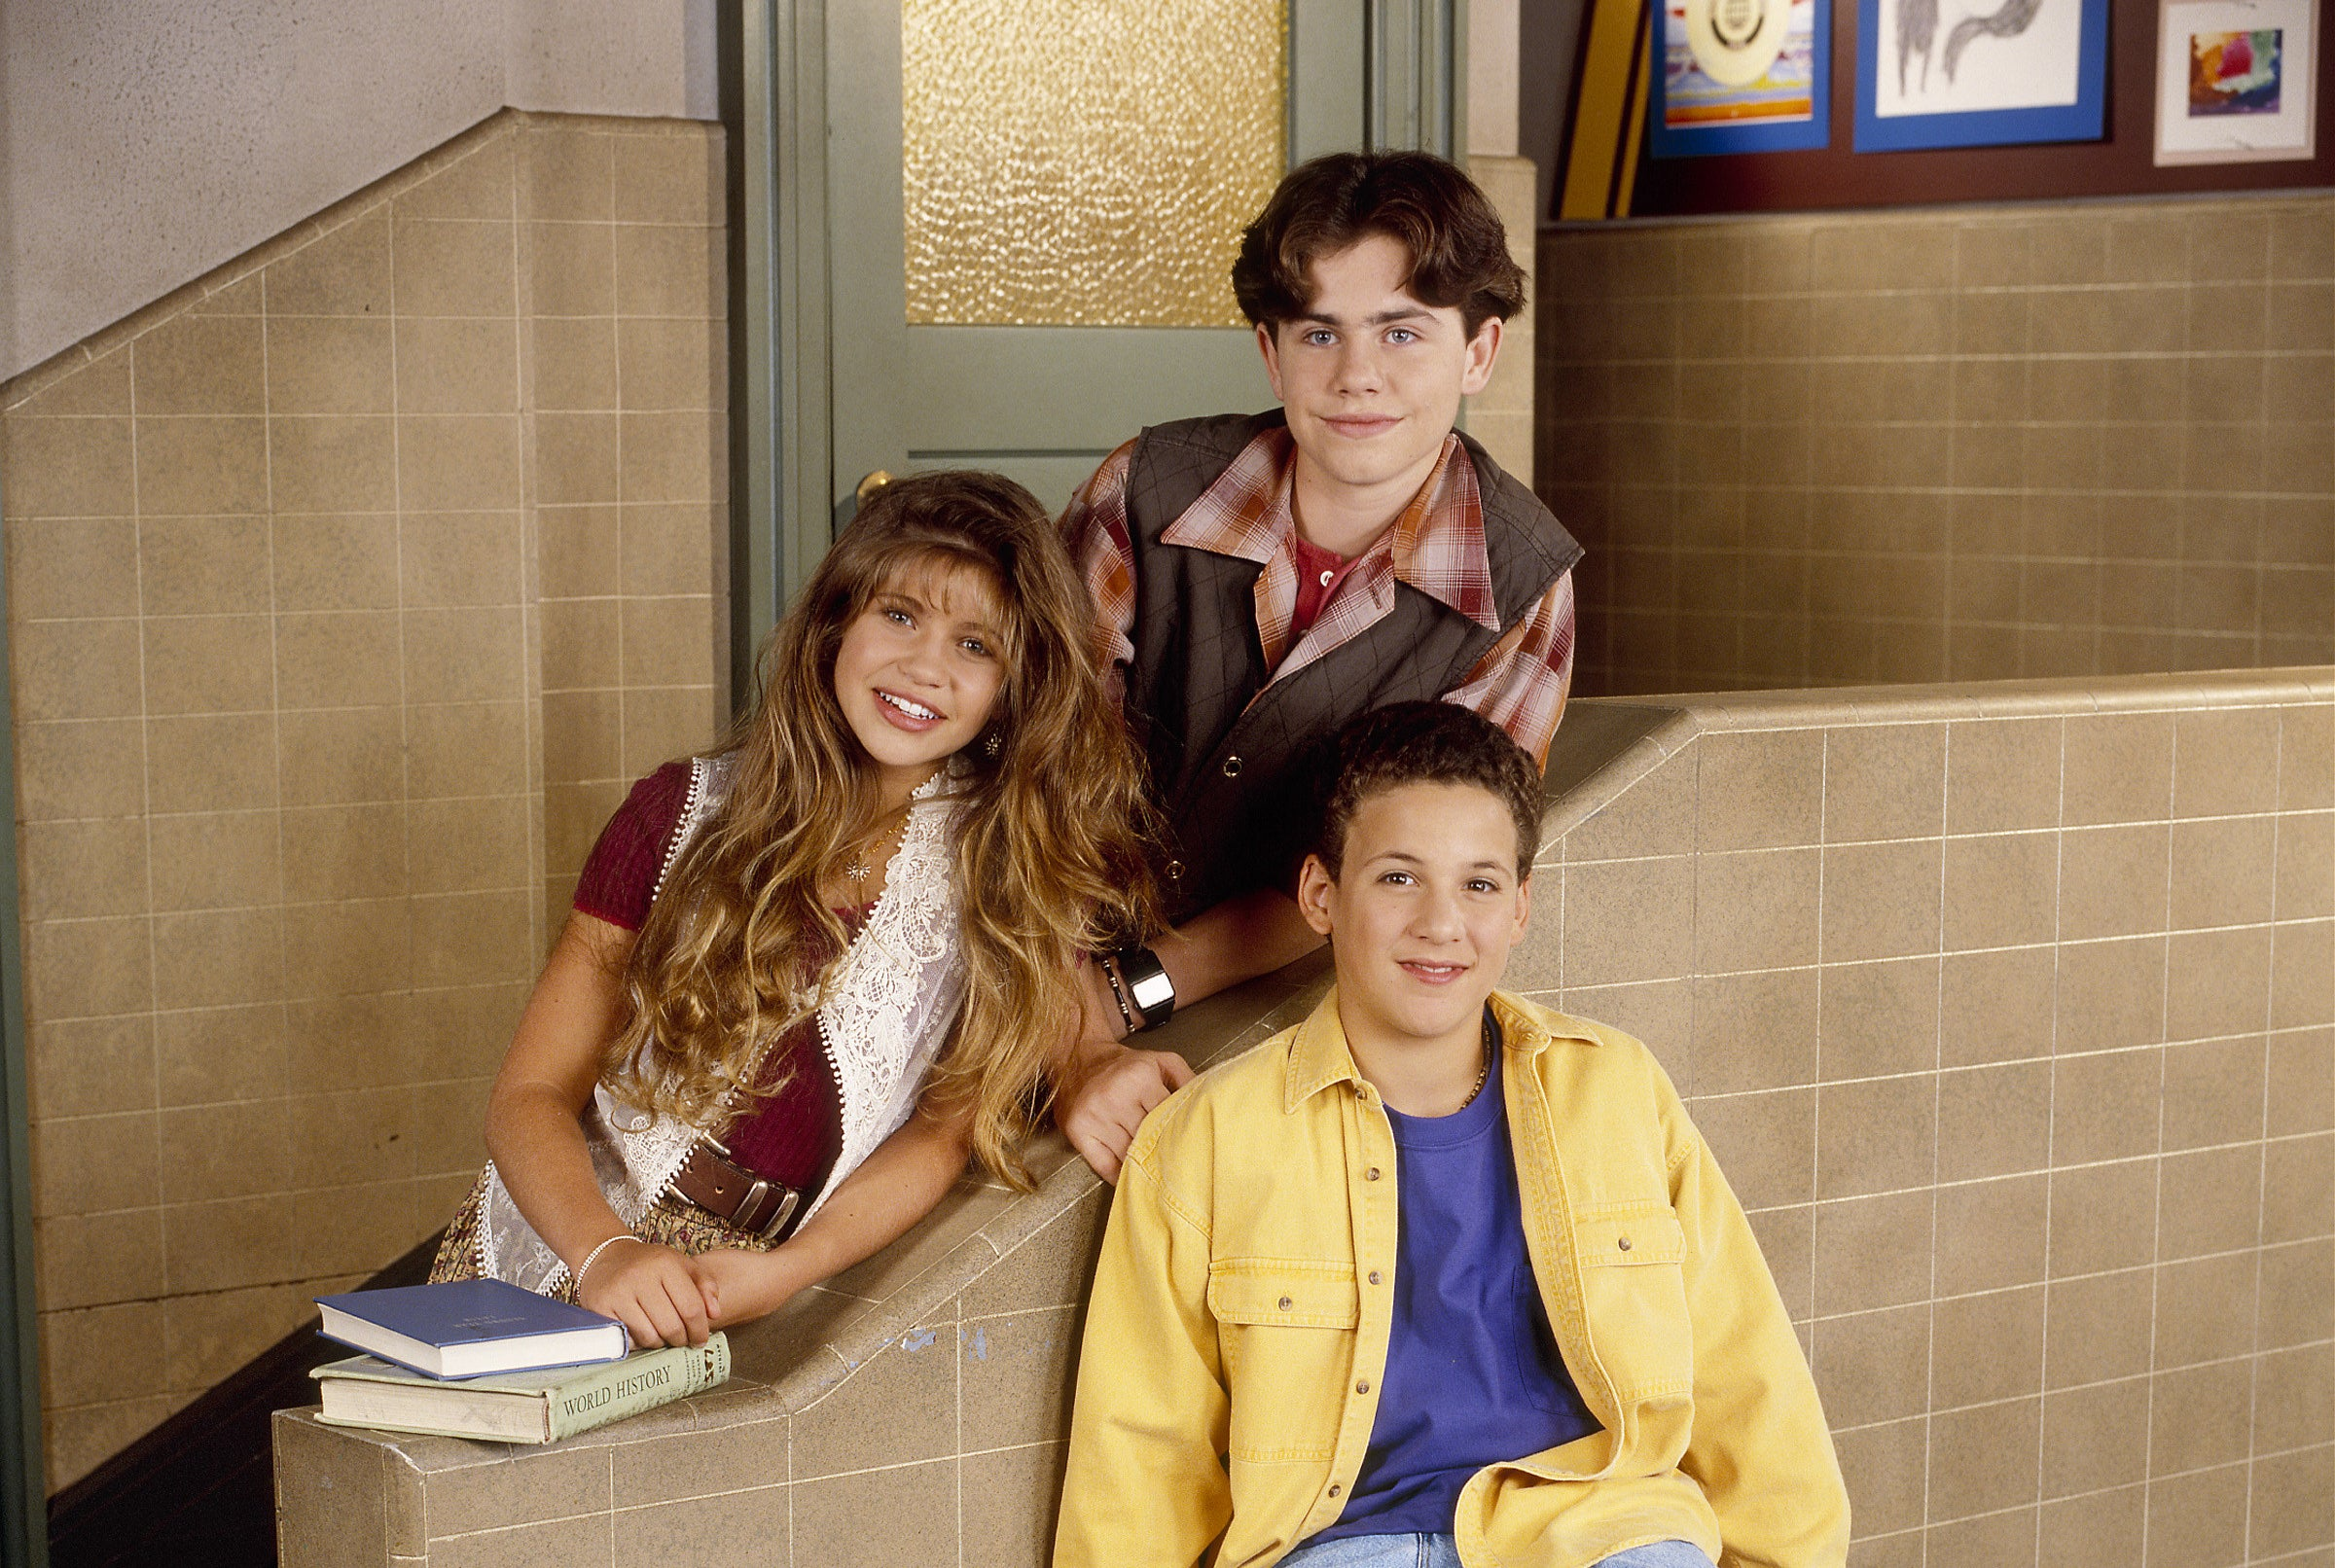 Season 2 photo of Danielle Fishel, Rider Strong, and Ben Savage posing on the school's staircase